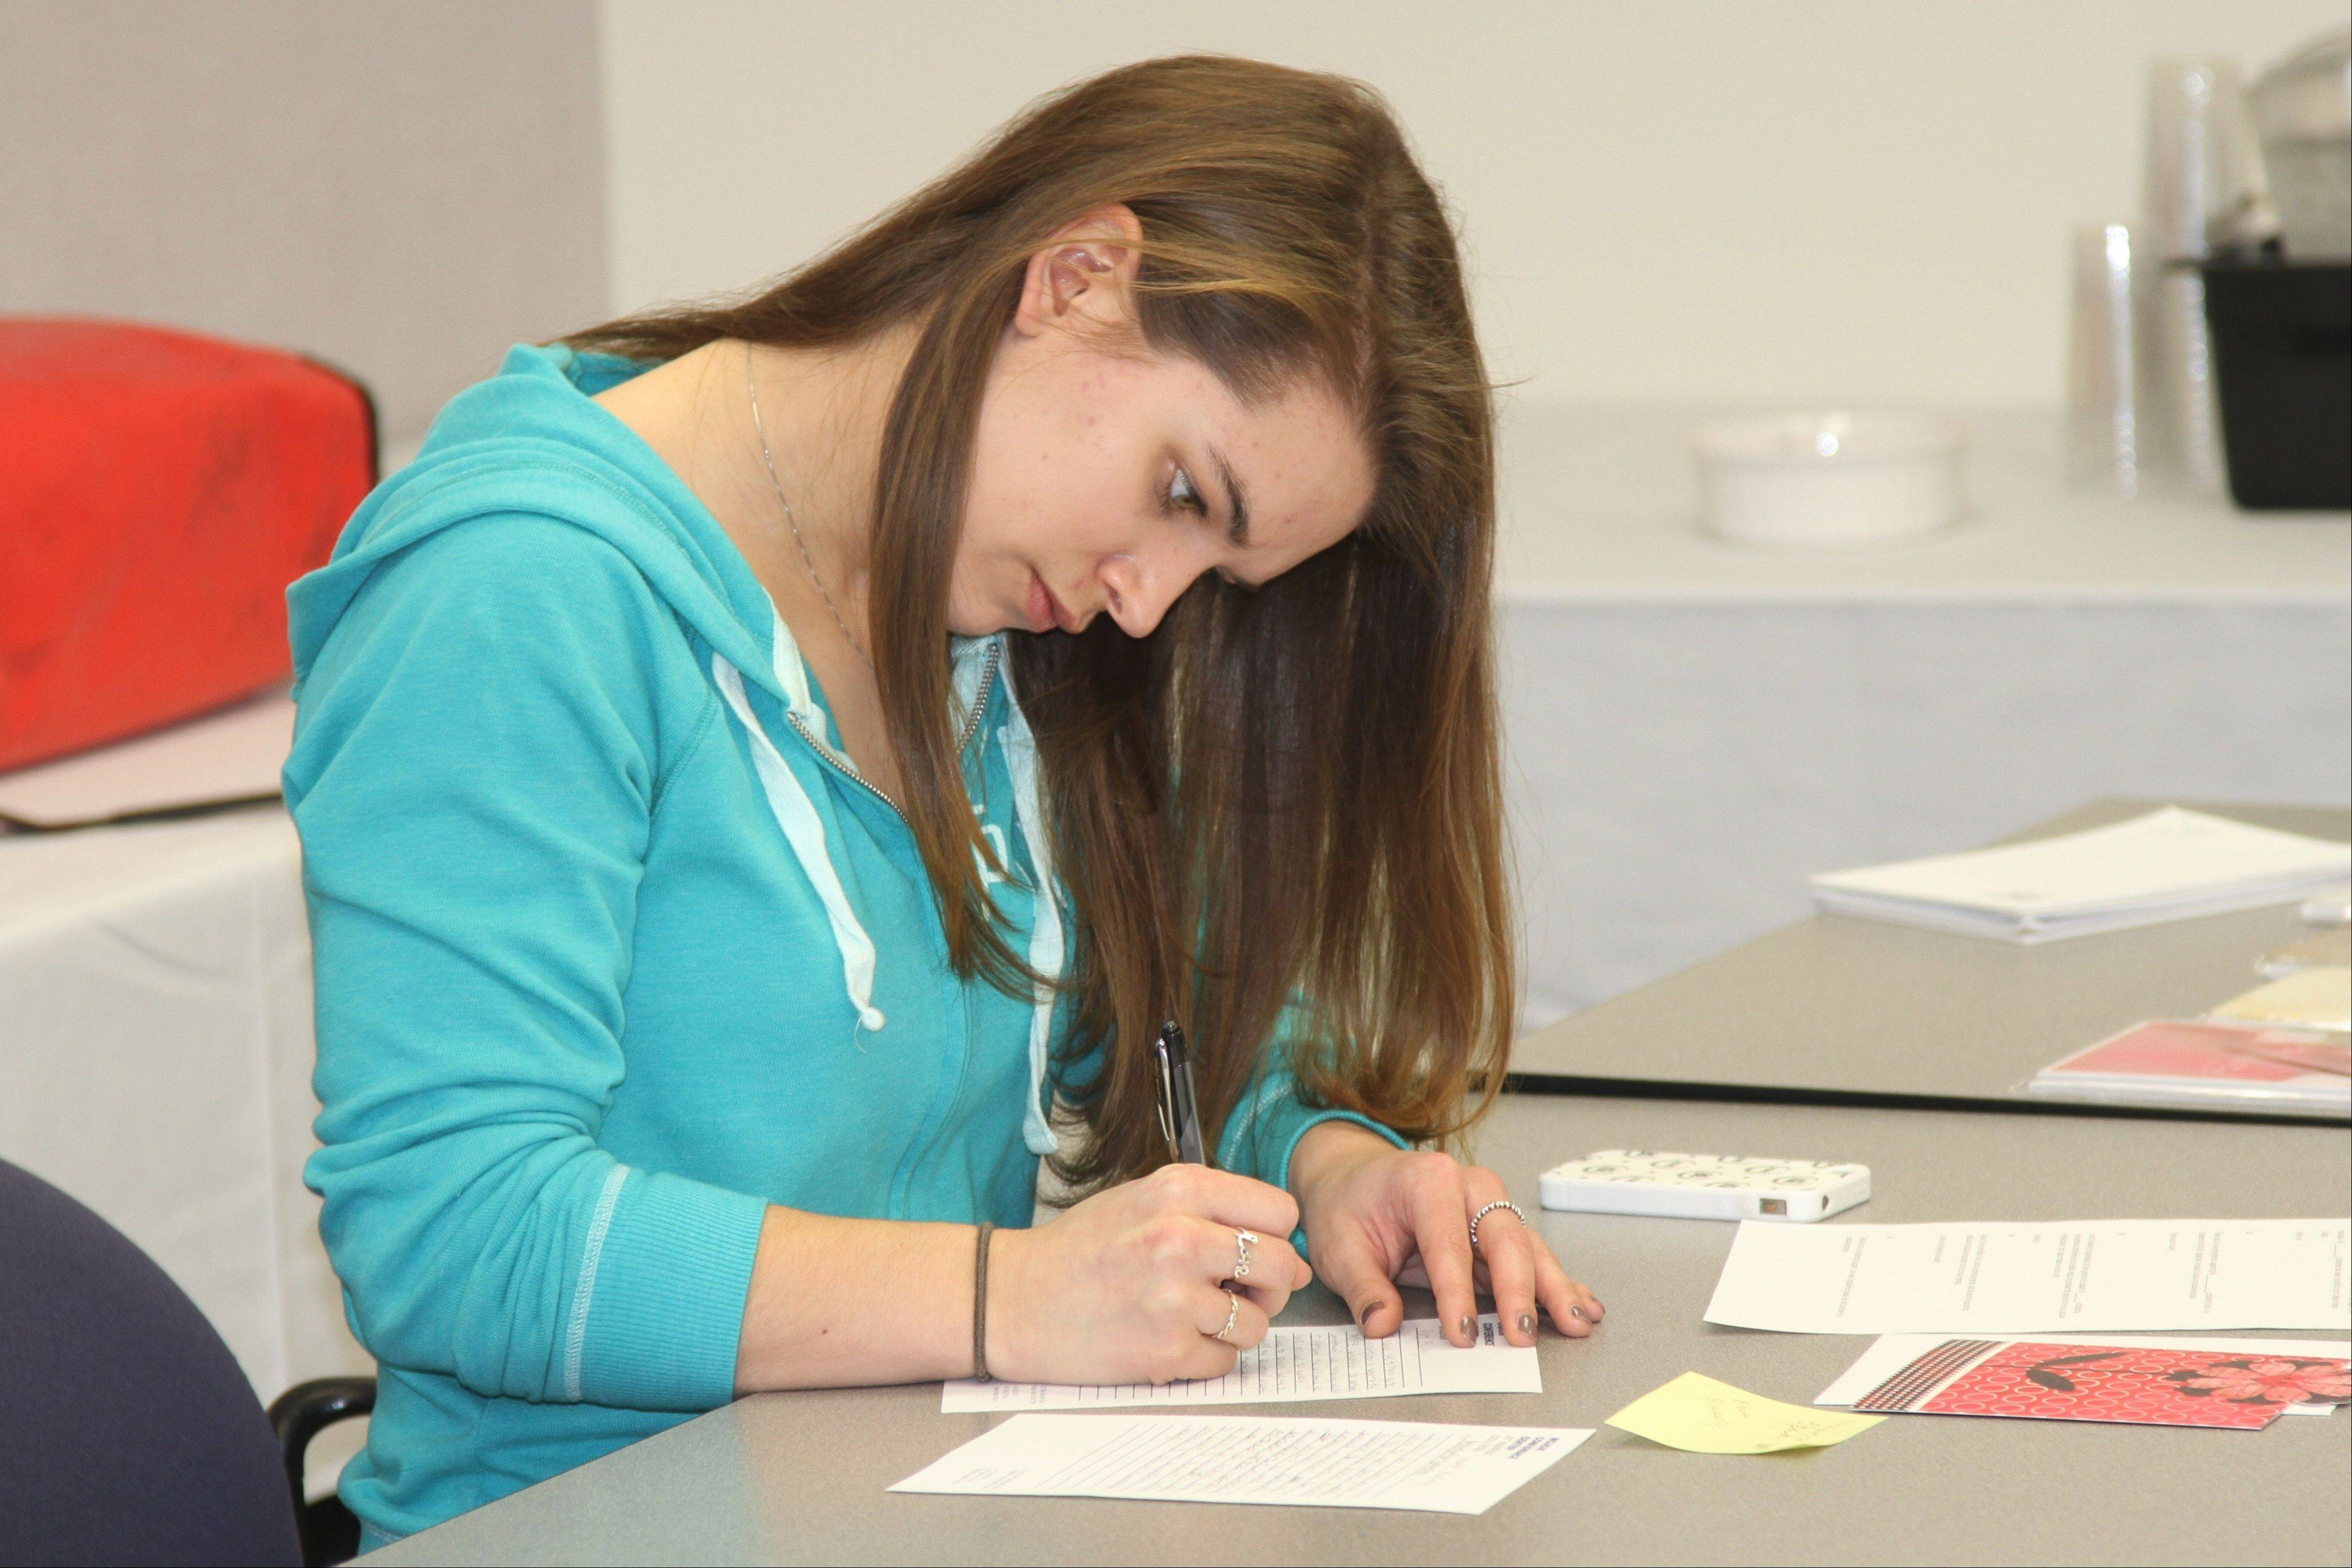 A Harper College scholarship recipient pens a note of thanks to her donor in honor of Valentine's Day. The effort was organized by the College's Educational Foundation.